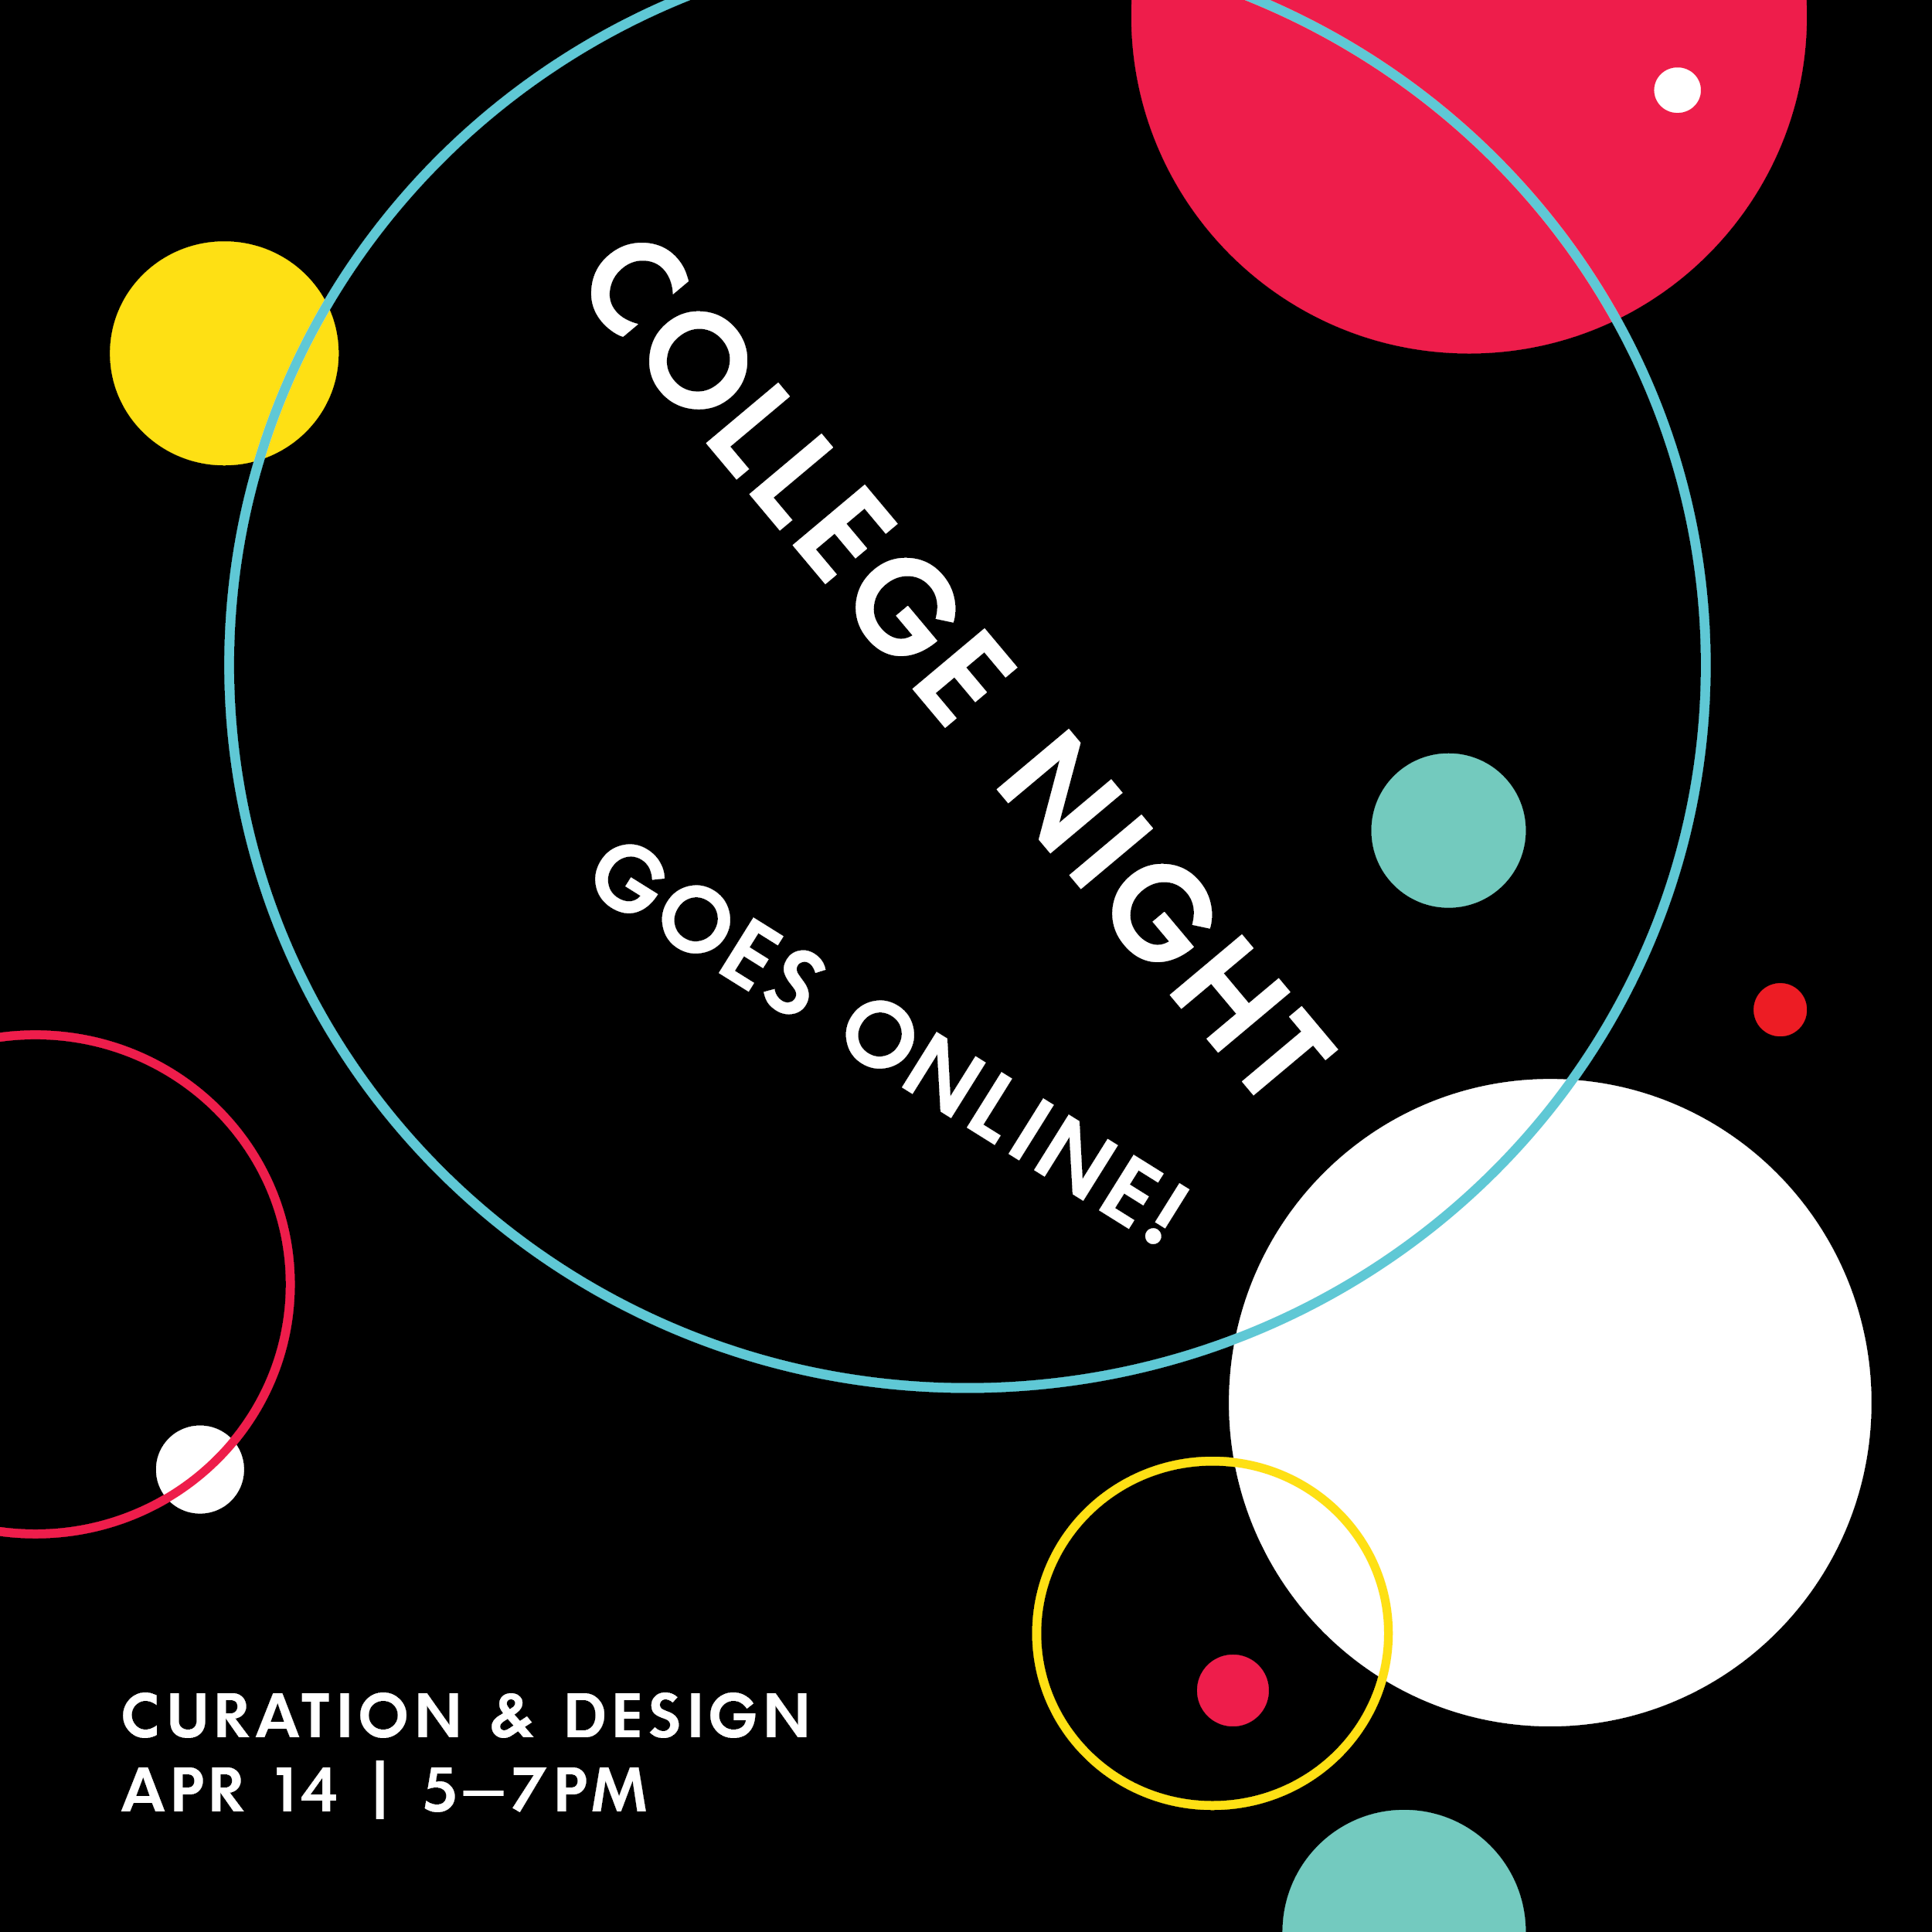 promotional graphic for a virtual College Night event by Poster House